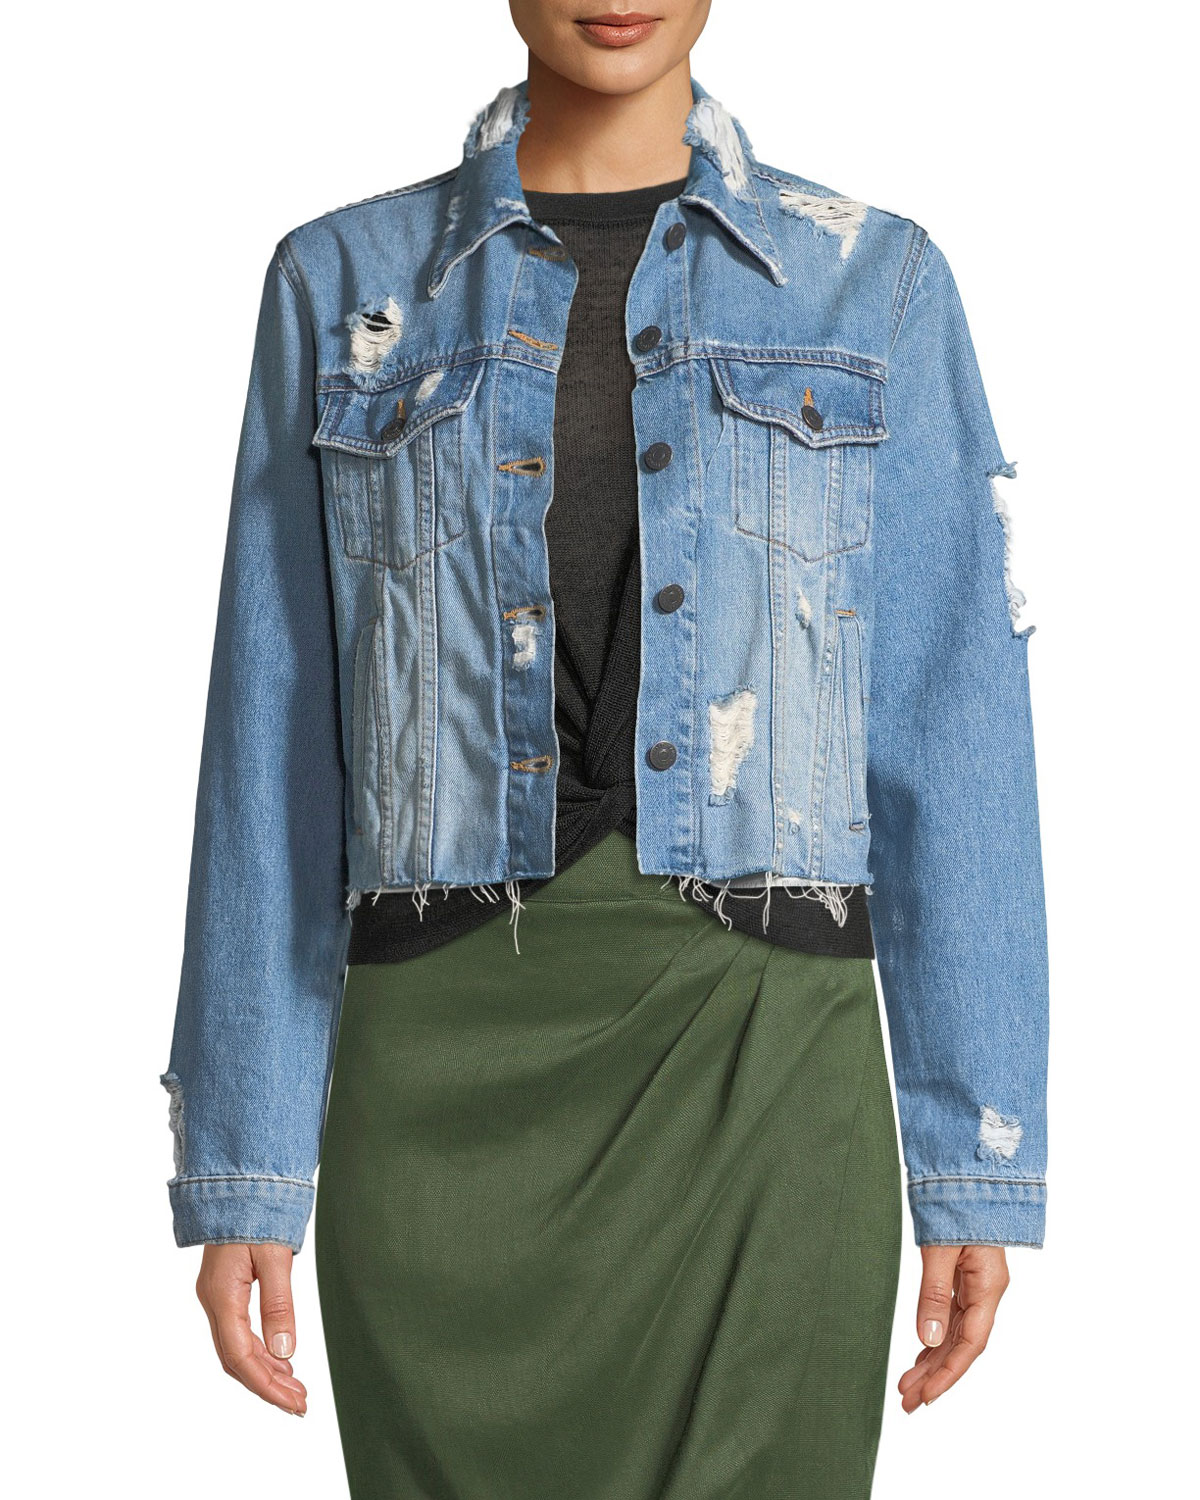 95996399b7 Quick Look. Veronica Beard · Cara Cropped Distressed Jean Jacket. Available  in Blue